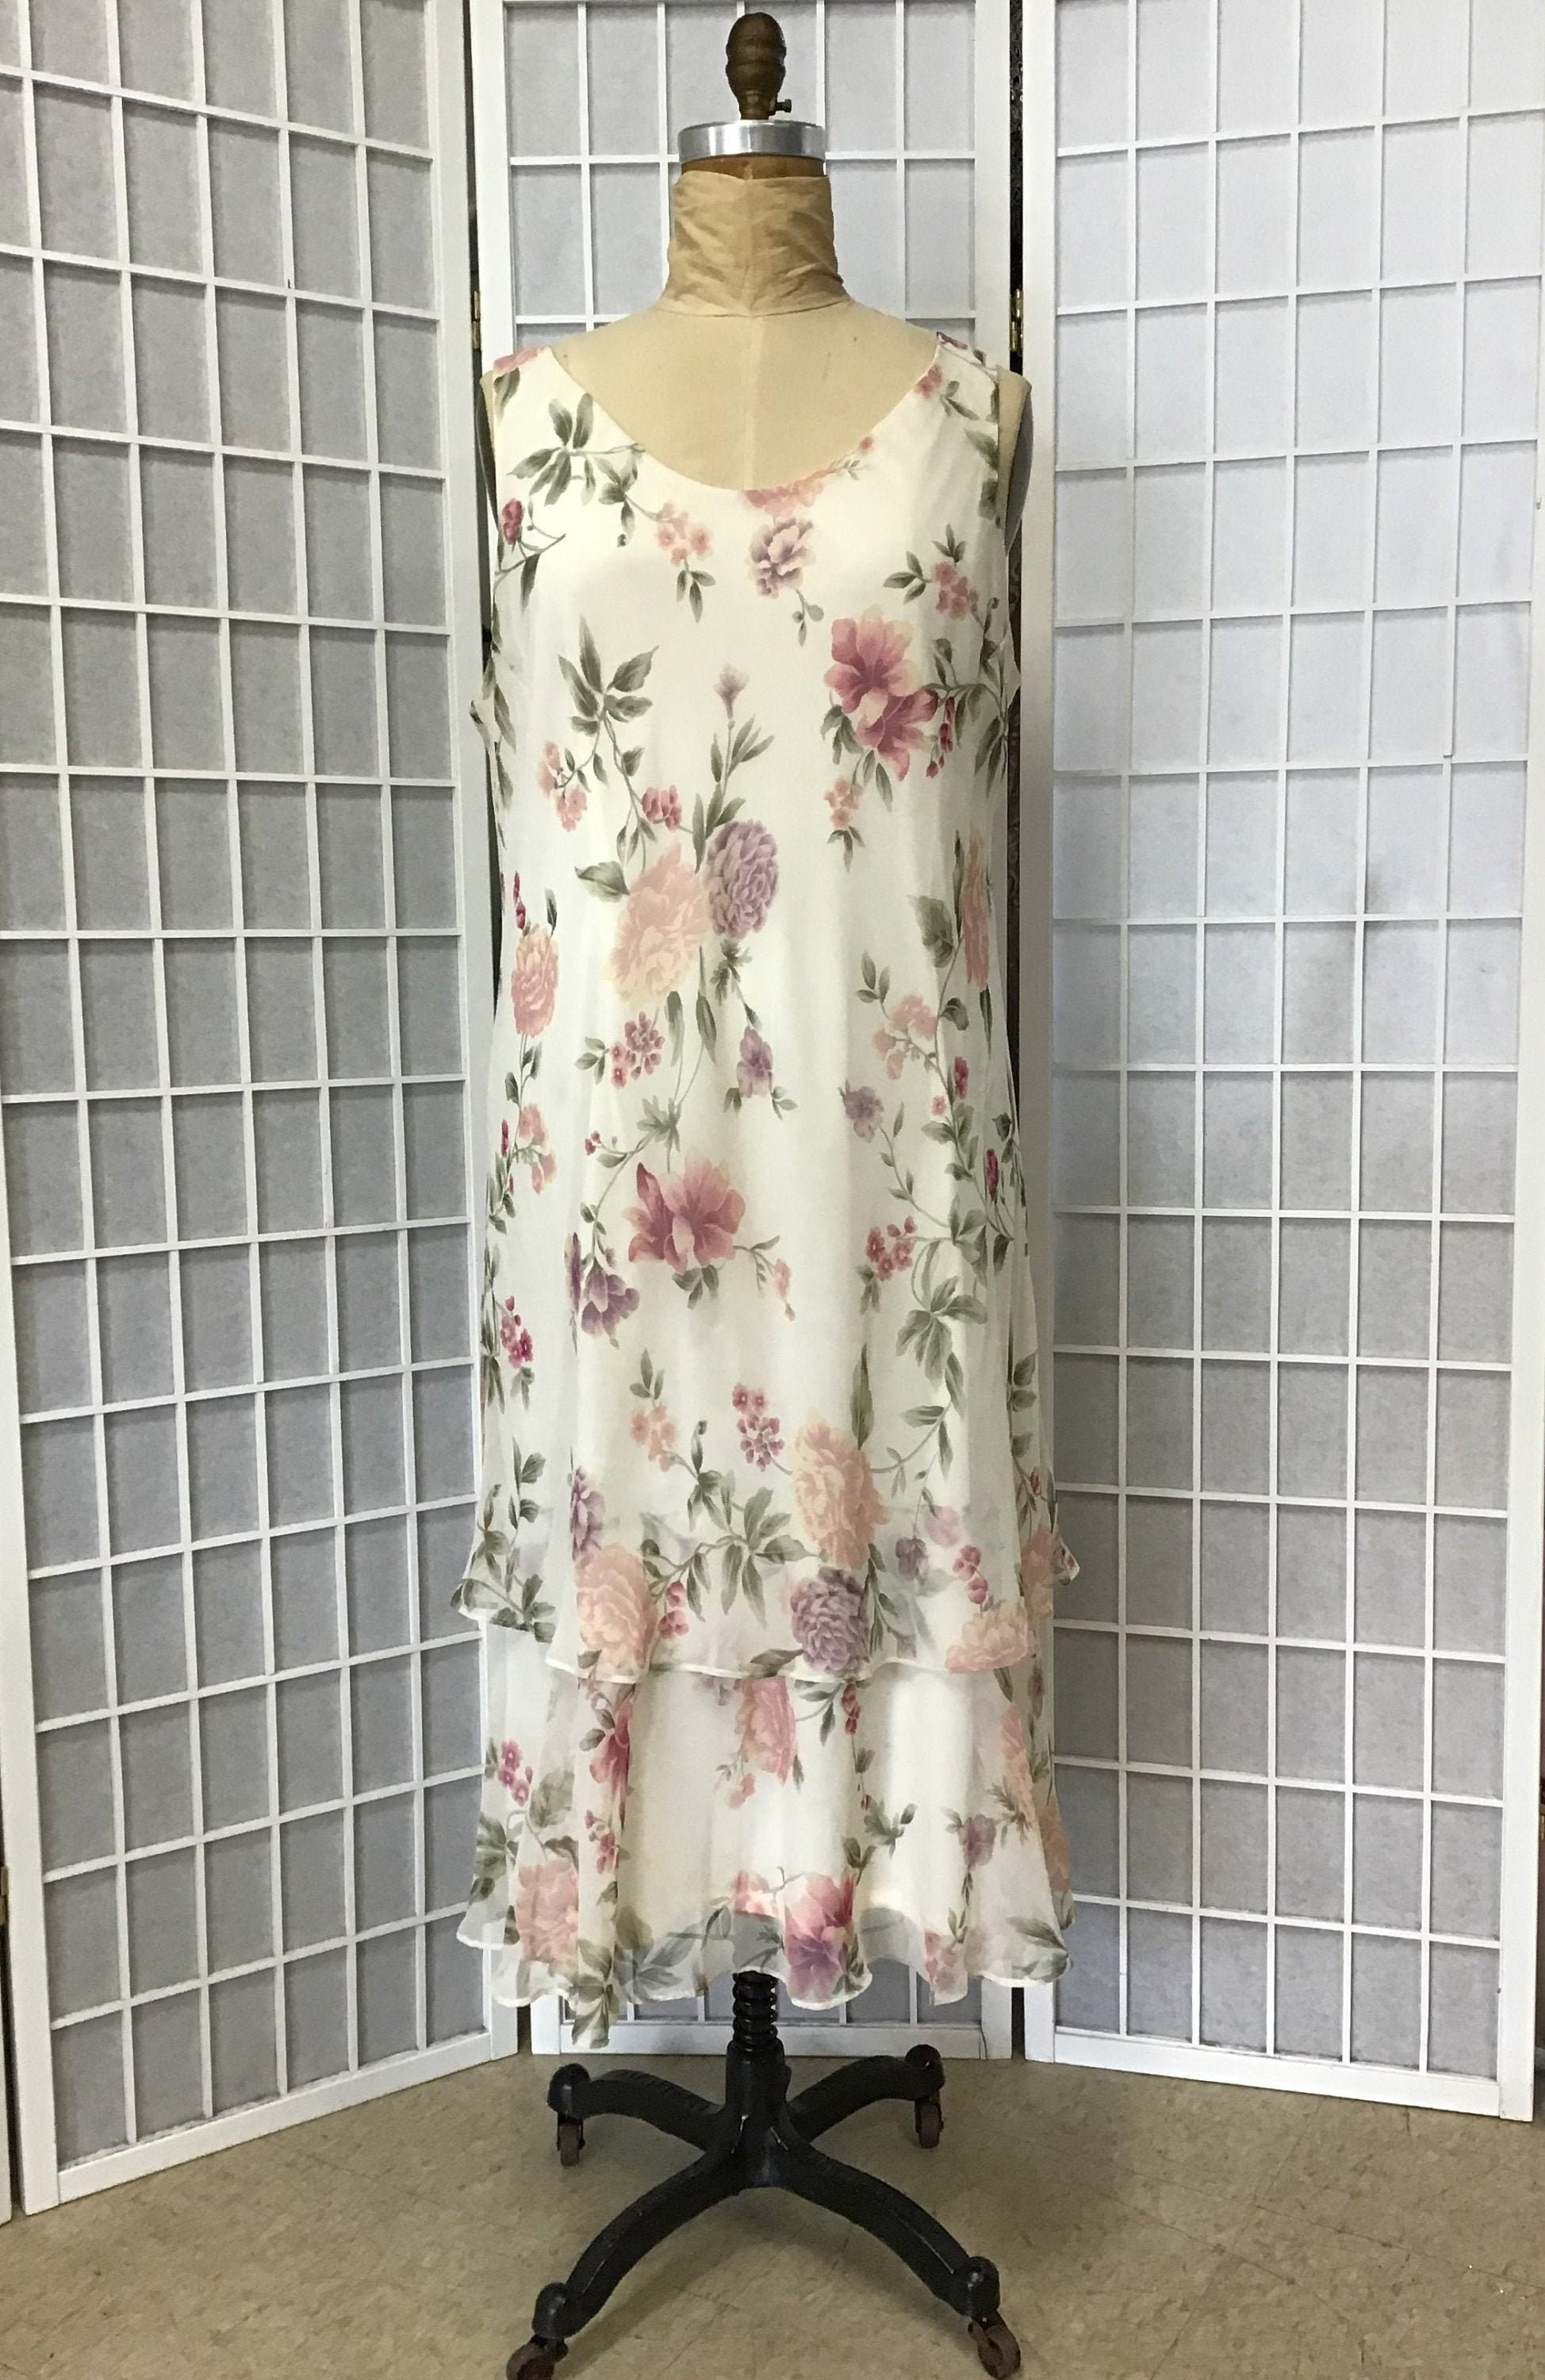 80s Dresses   Casual to Party Dresses 1980S Floral Print Chiffon Dress With Jacket, Size Large $36.00 AT vintagedancer.com